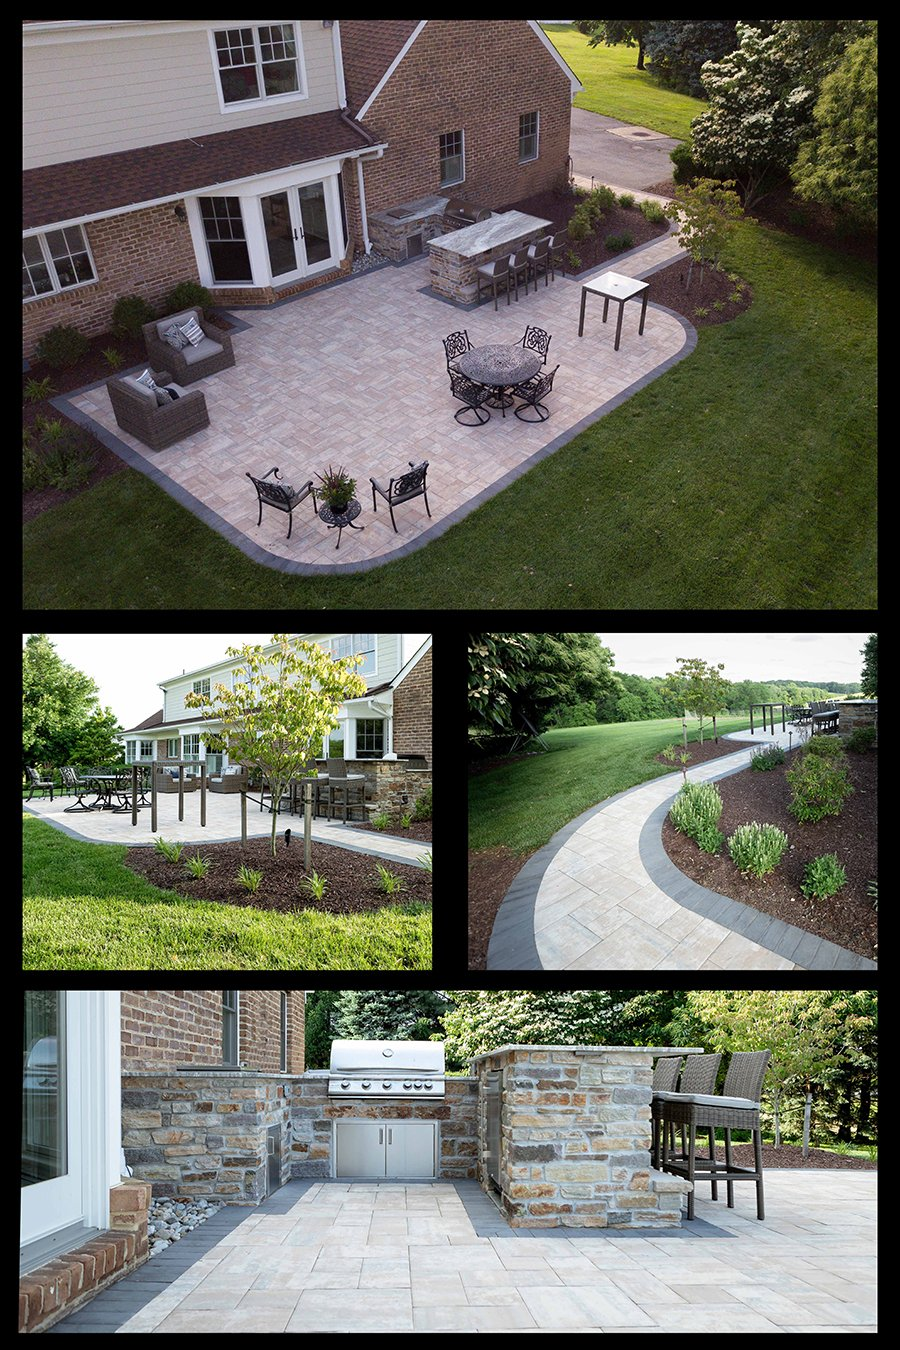 Patio and Kitchen for my backyard, Rhine Landscaping